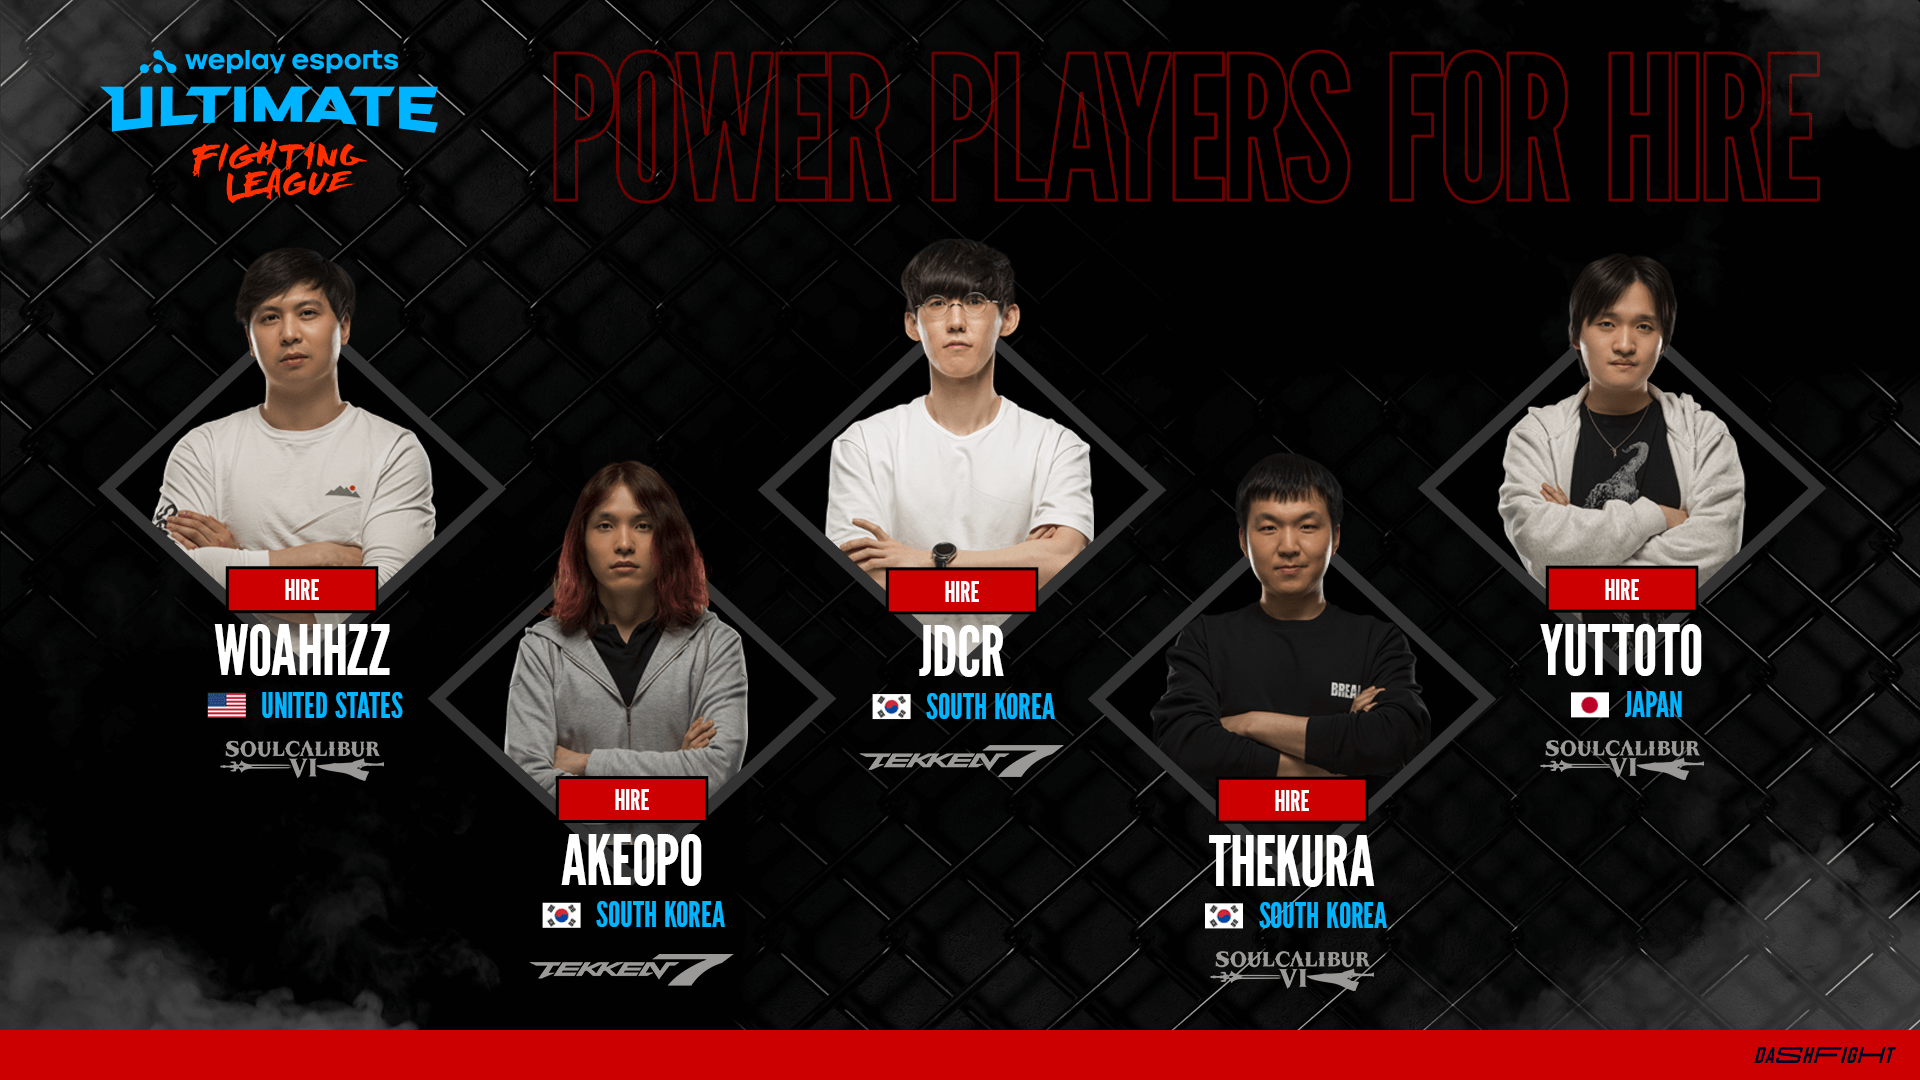 Fighting games esports - pro players free agents